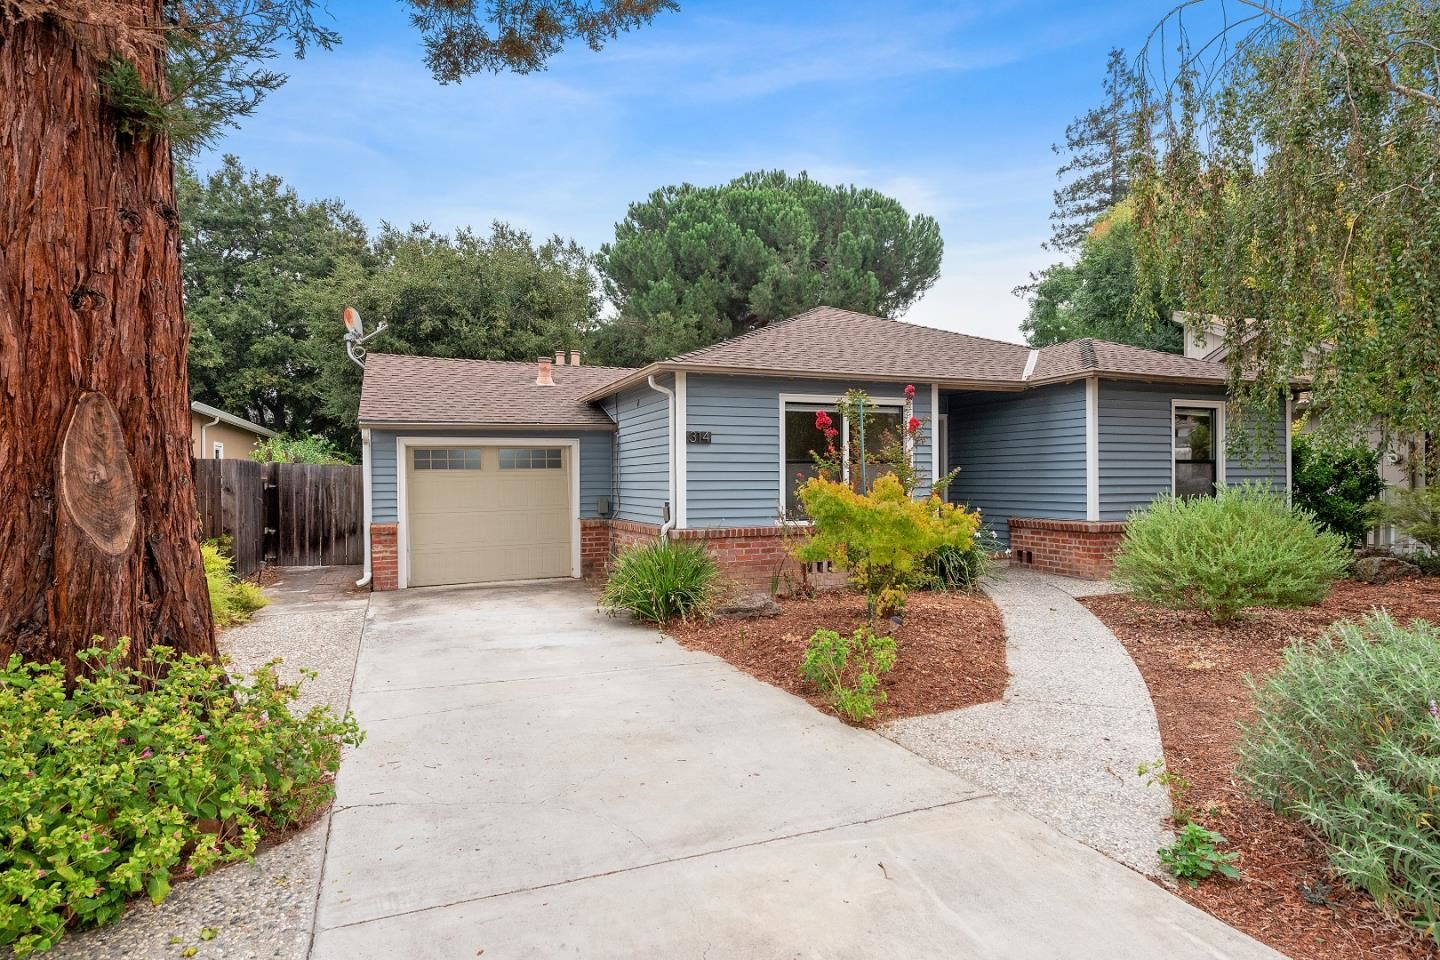 Photo for 314 Esther AVE, CAMPBELL, CA 95008 (MLS # ML81809517)